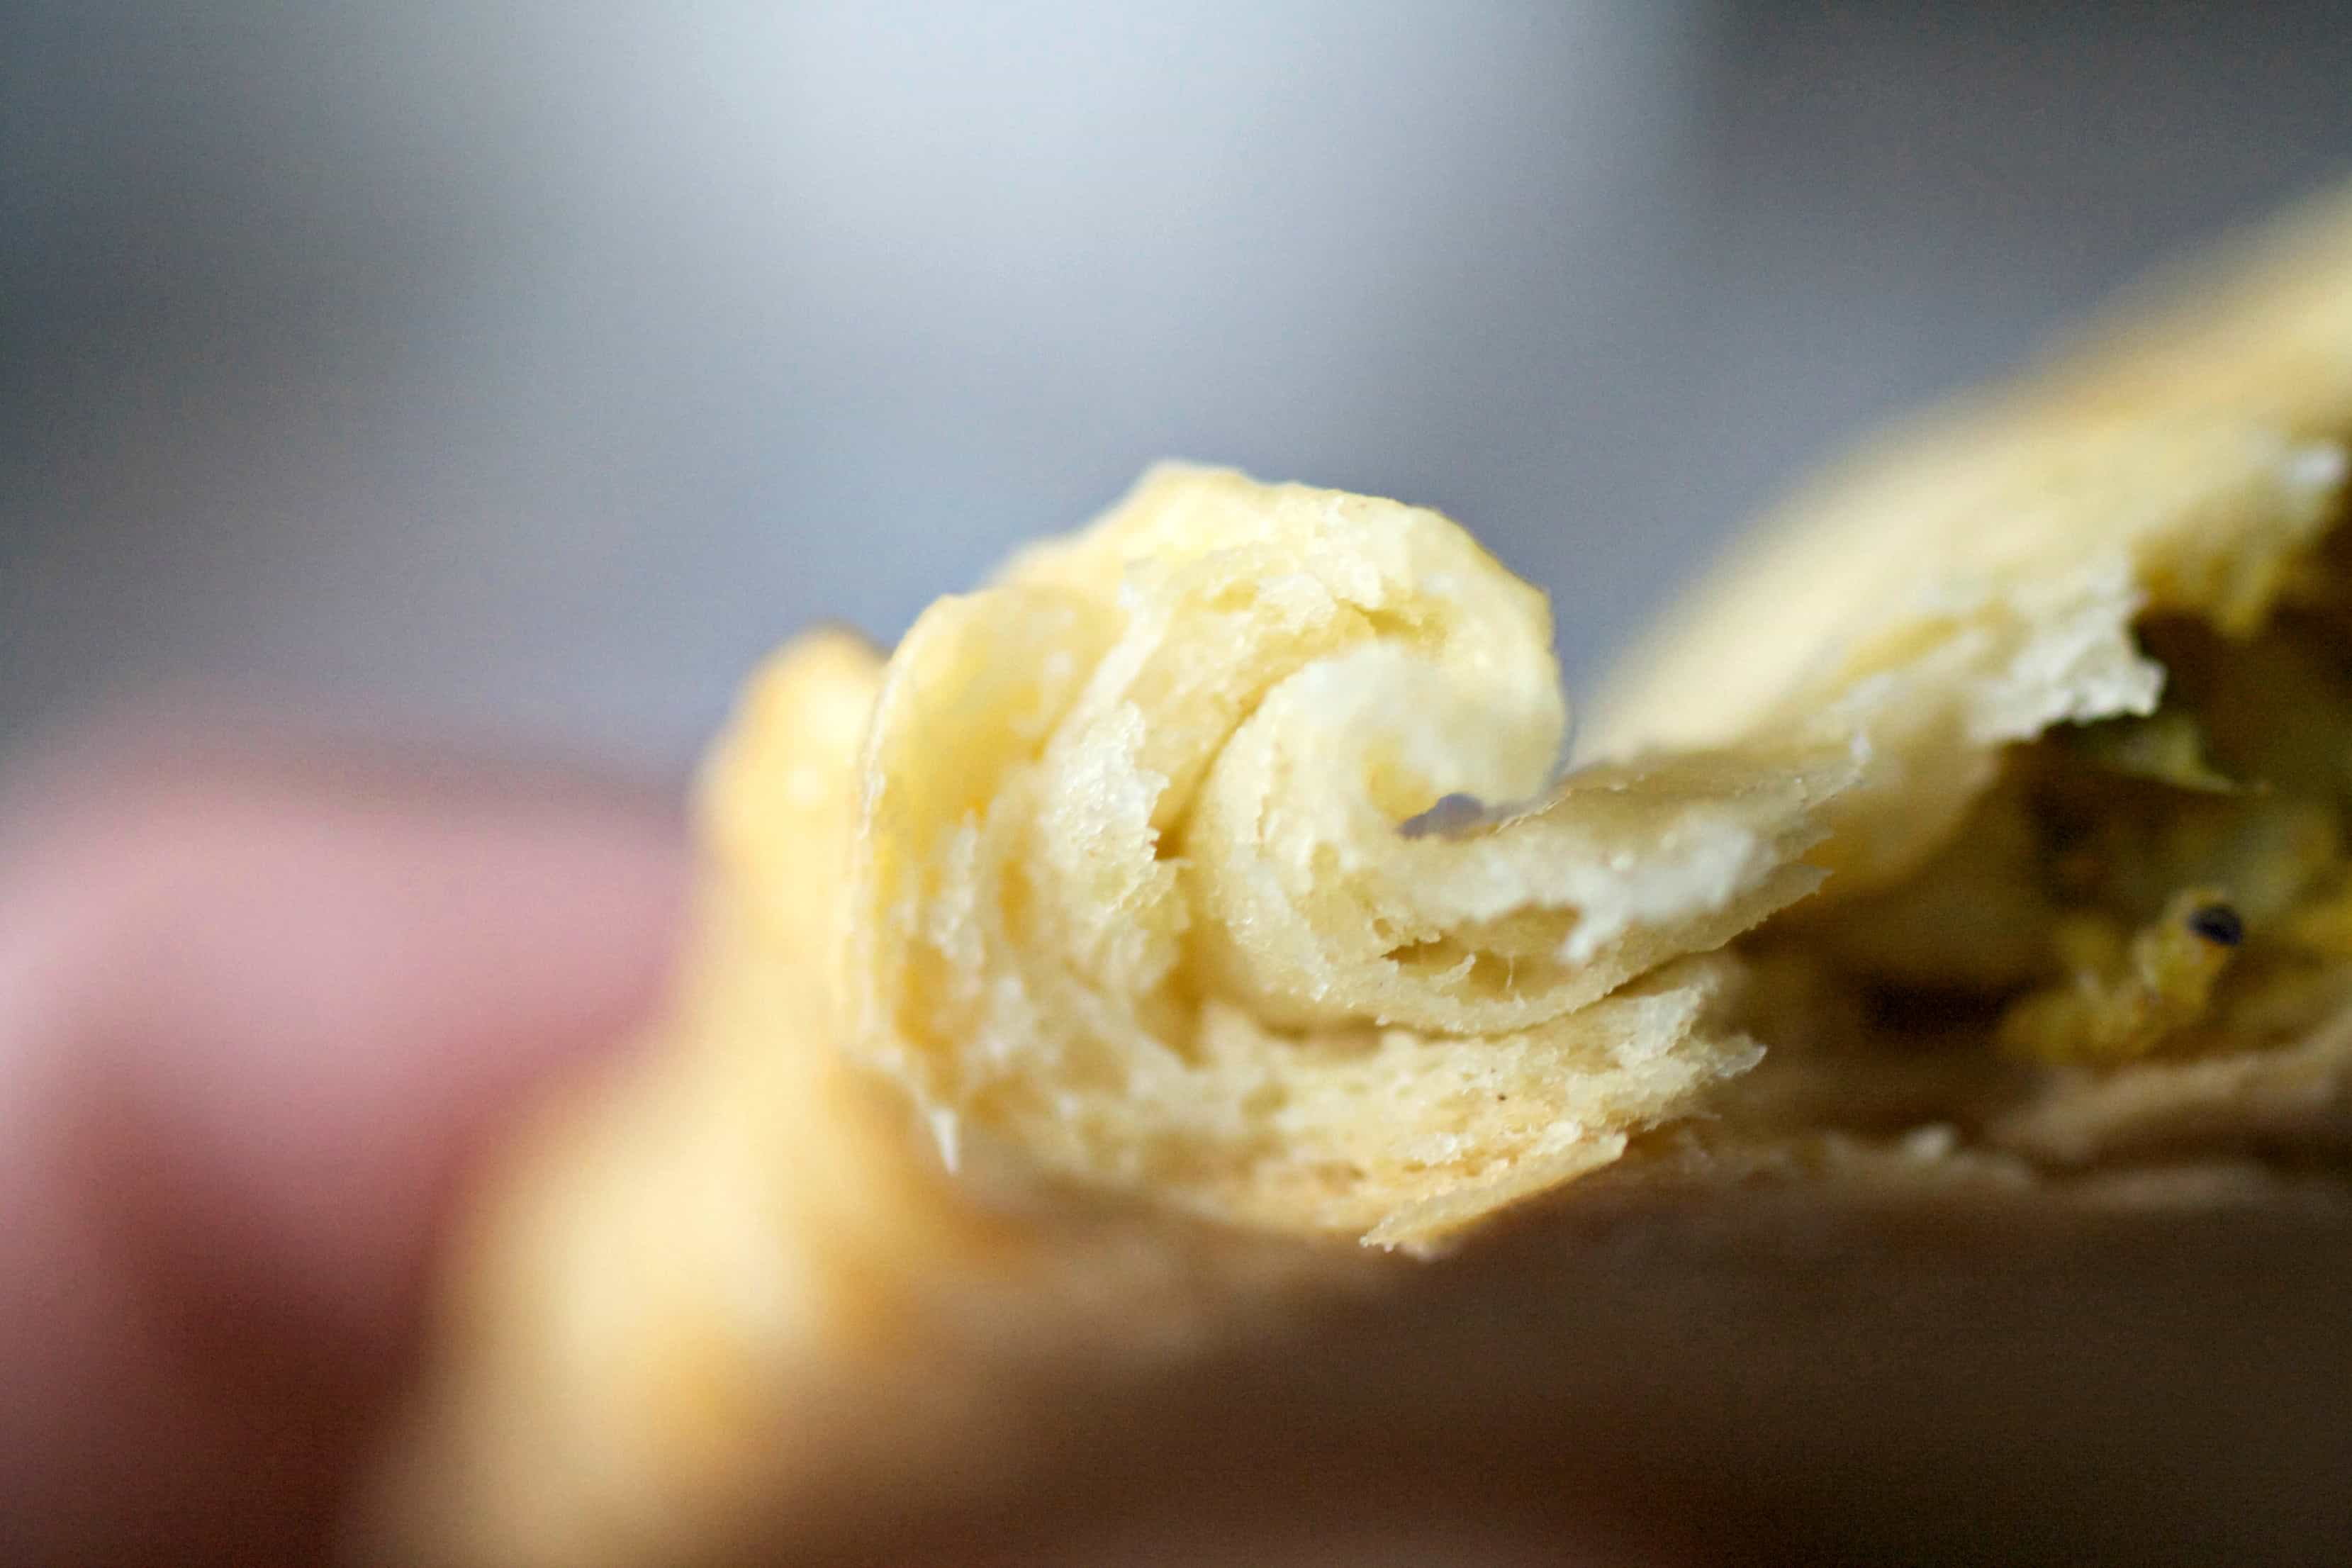 The inside of a flaky cooked pastry dough crust